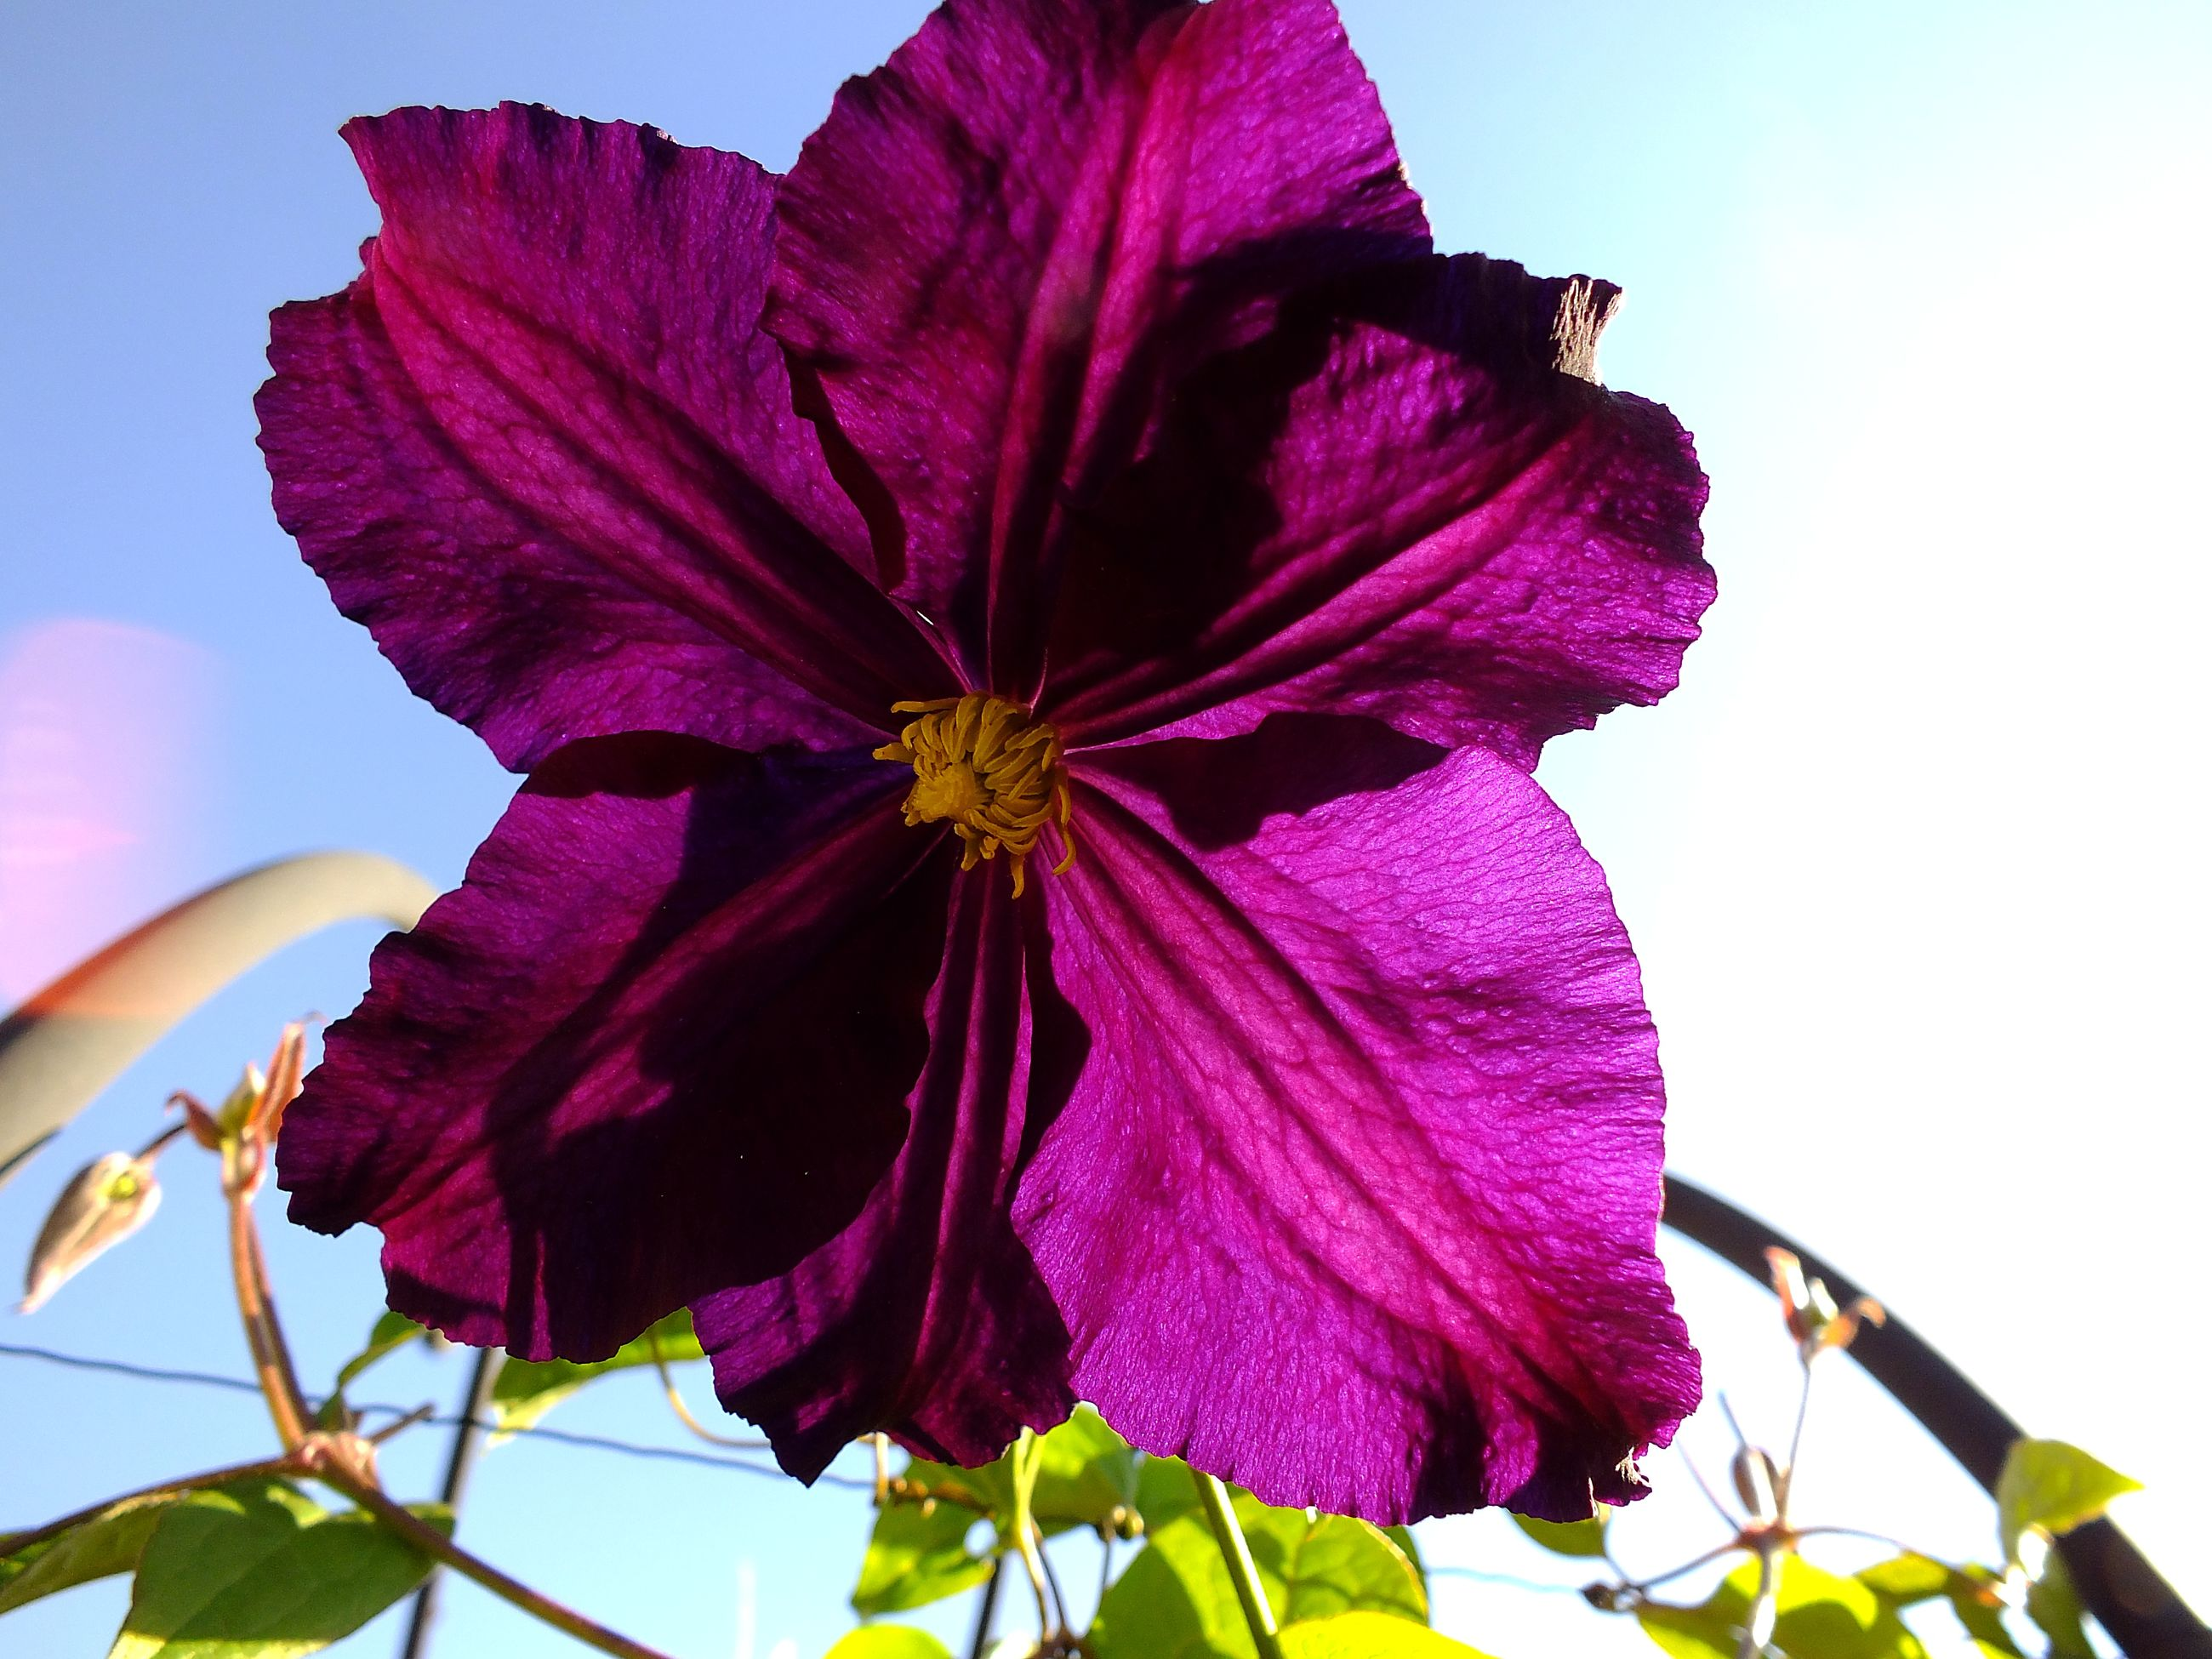 flowering plant, flower, plant, beauty in nature, petal, fragility, close-up, vulnerability, flower head, inflorescence, freshness, growth, nature, purple, no people, sky, petunia, focus on foreground, day, outdoors, pollen